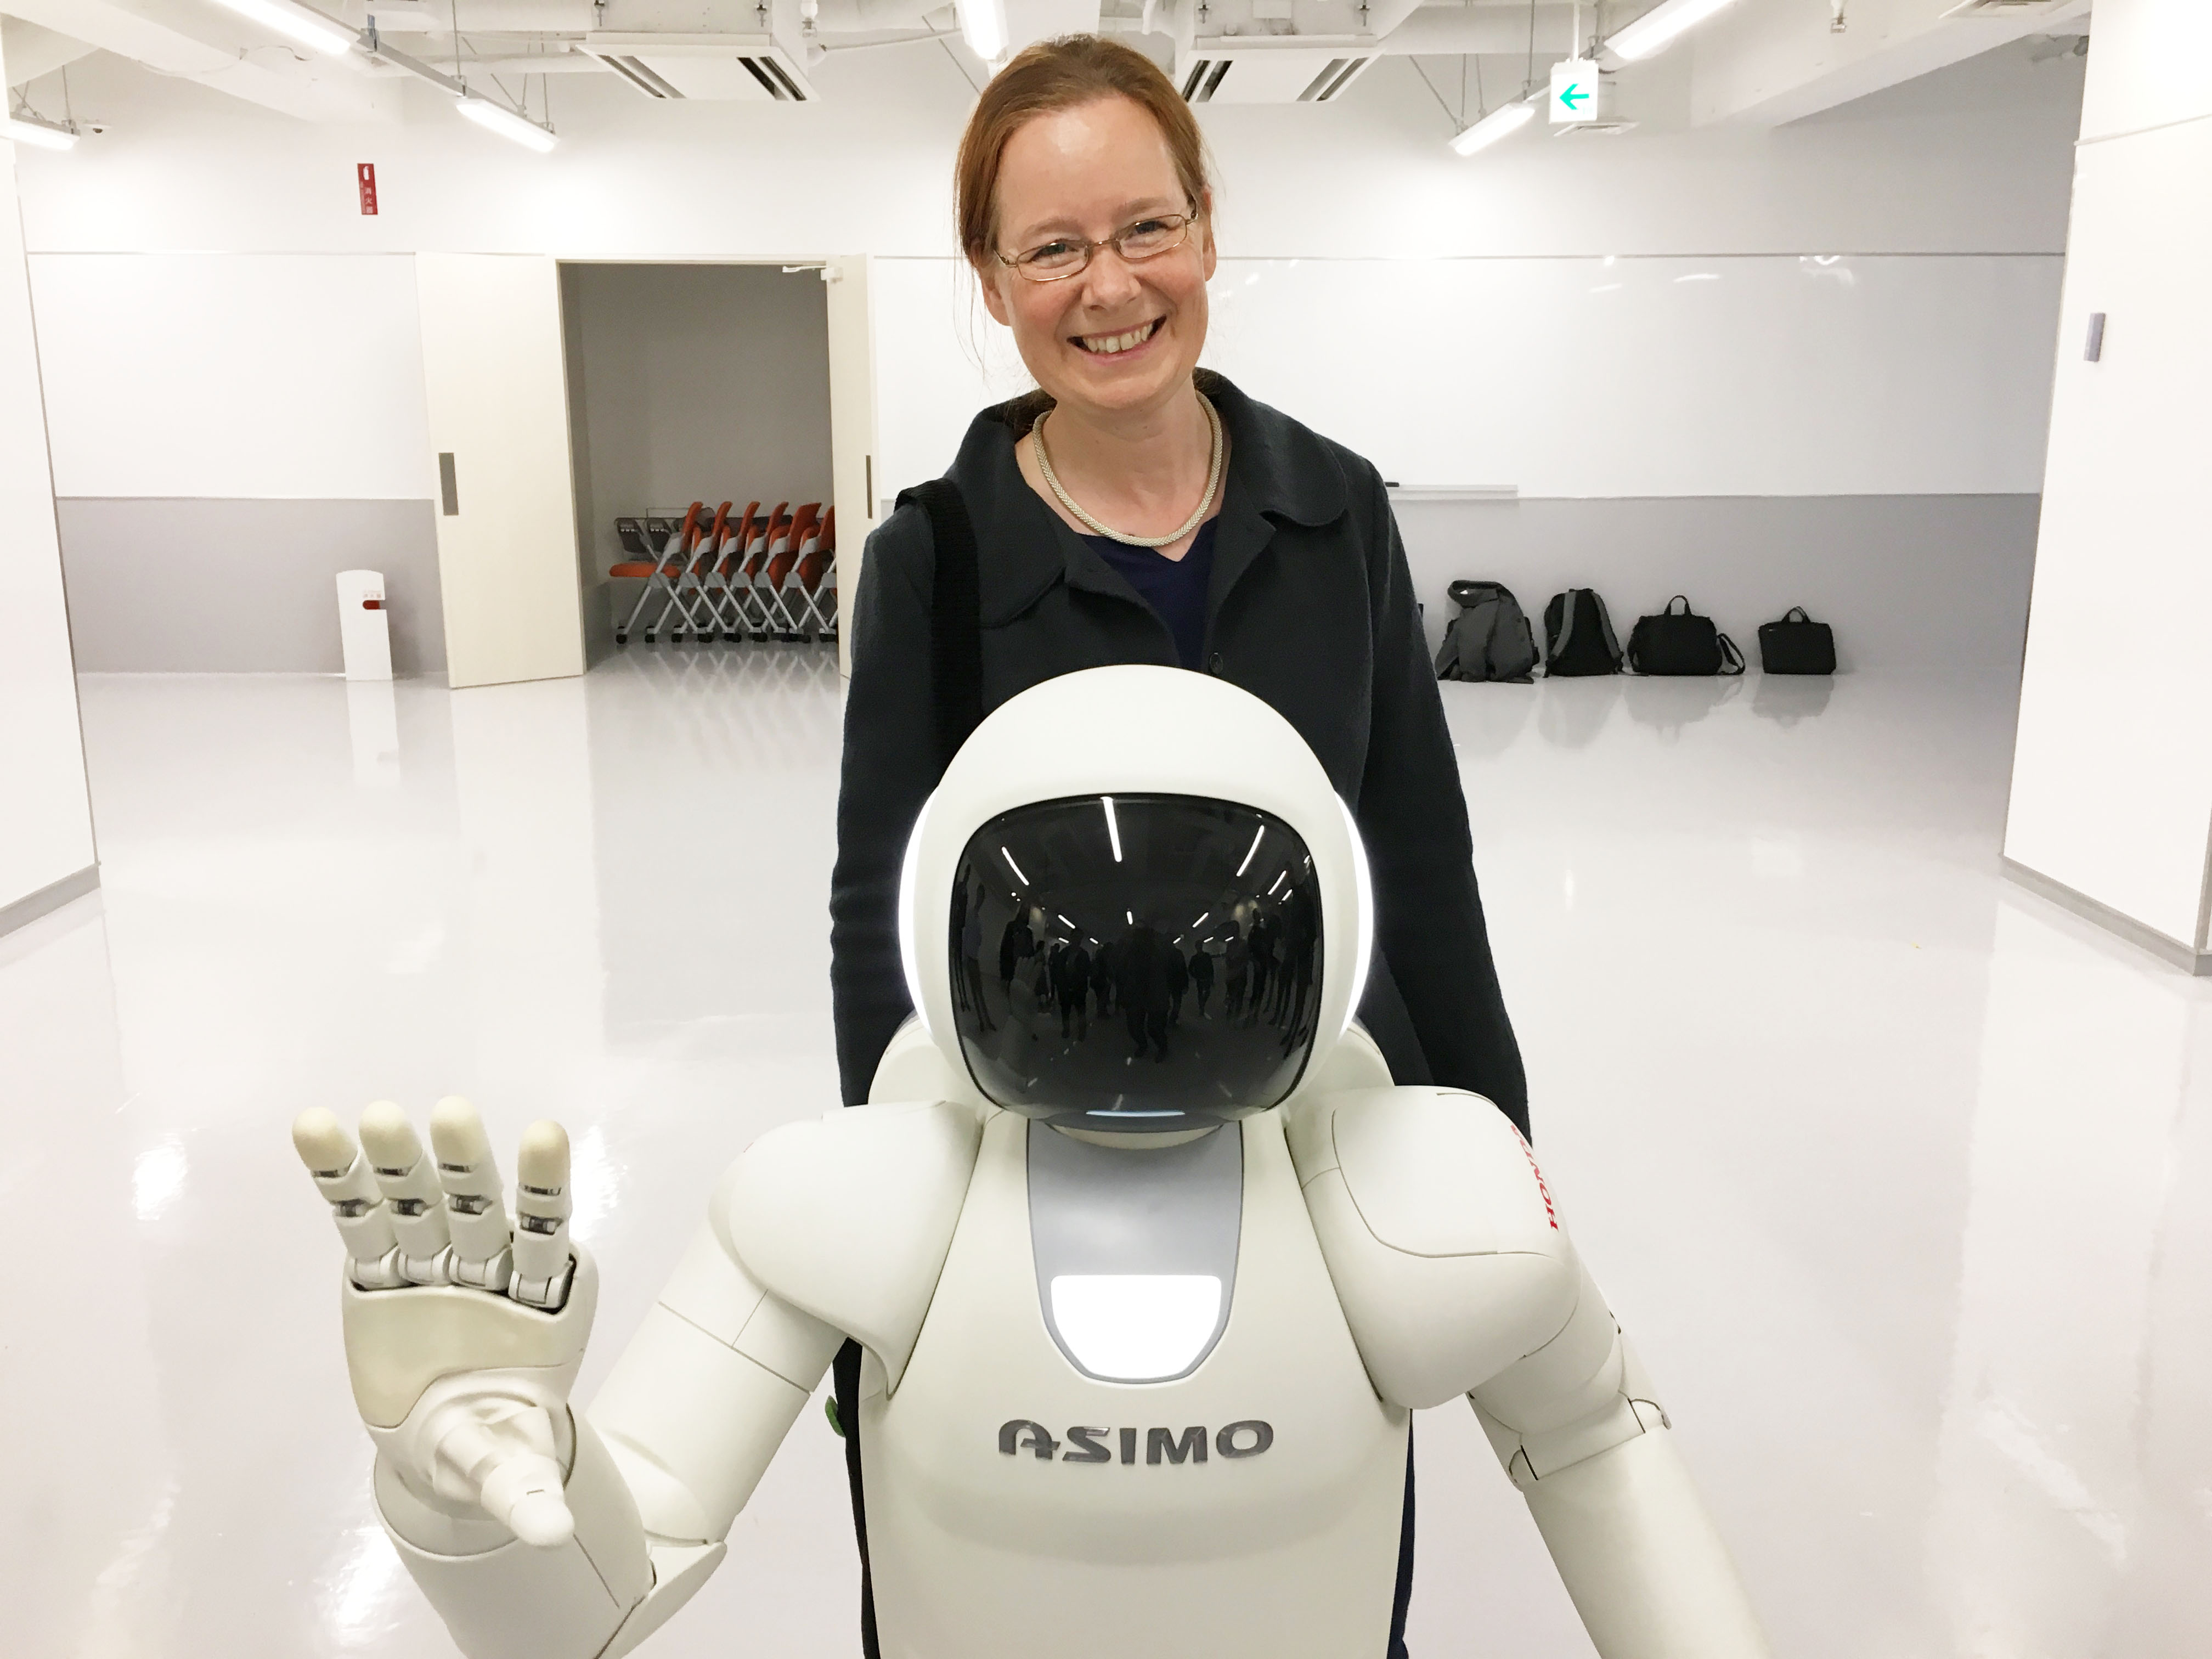 During a study trip to Tokyo: Kerstin Fischer and ASIMO, a humanoid robot by Honda.